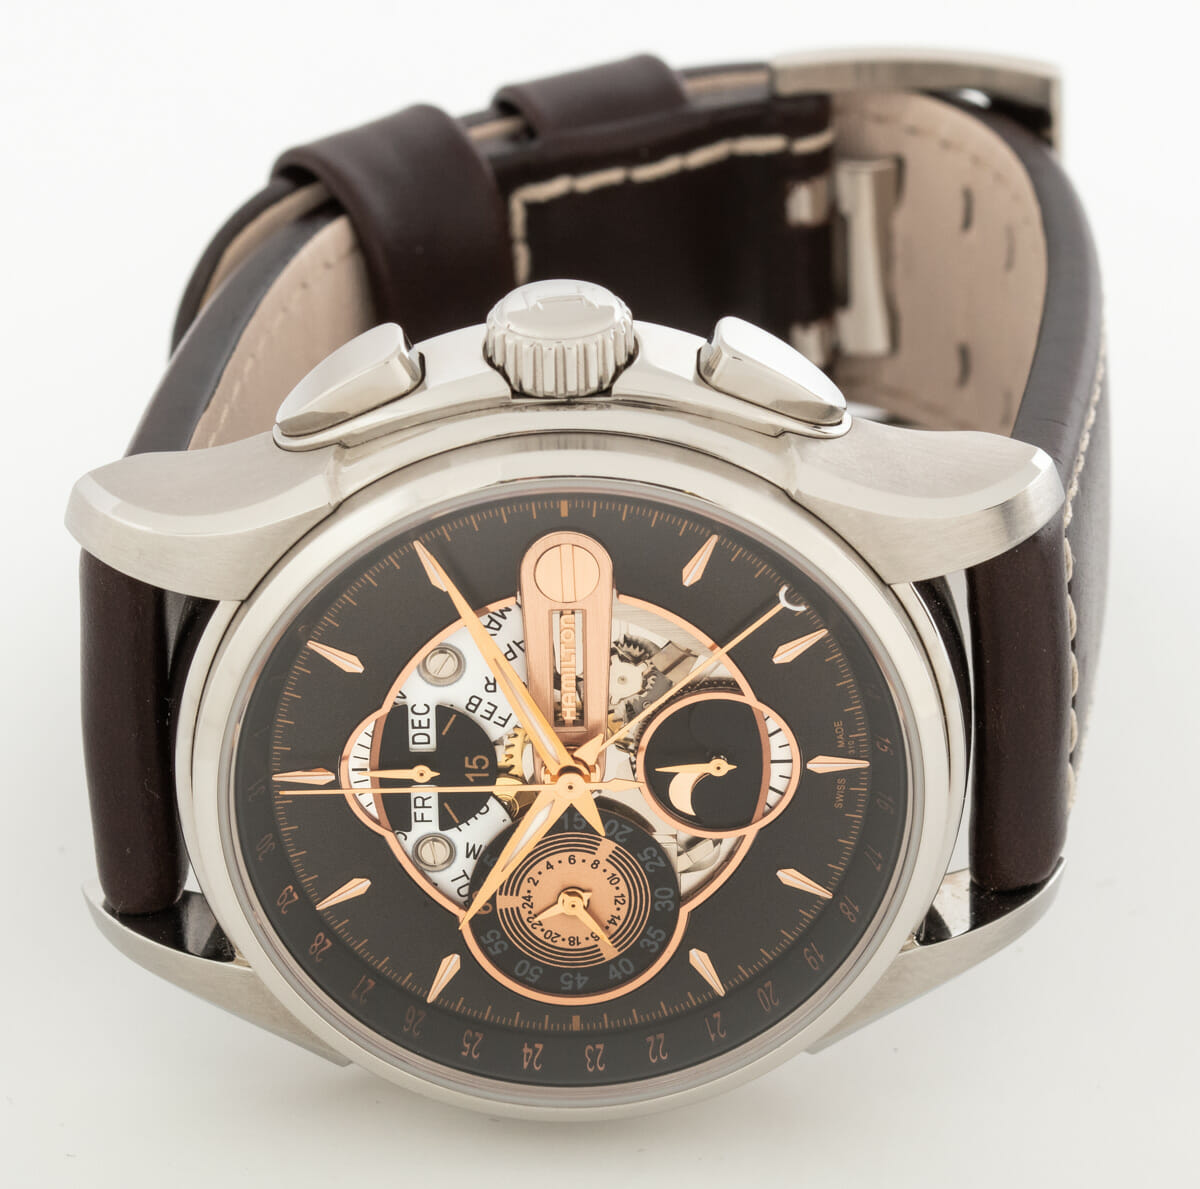 Front View of Jazzmaster Moon Chronograph